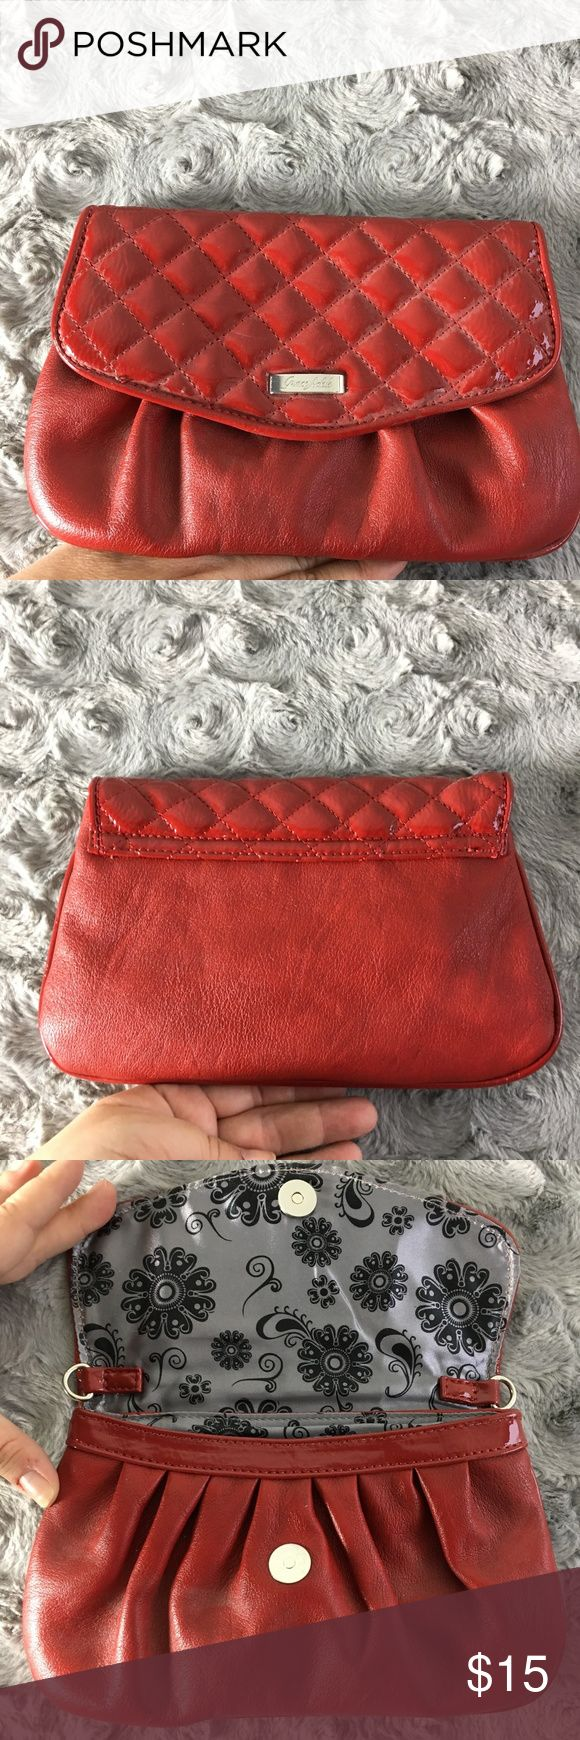 Grace Adele Quilted Red Clutch w/ Strap This clutch by Grace Adele is like new.  It has a quilted patent red foldover closure and pleated red faux leather bottom.  The interior has several pockets/slots for credit cards & such.  This purse can be carried as a clutch or small purse (strap included.)  Please see pics for approximate measurements. Grace Adele Bags Clutches & Wristlets